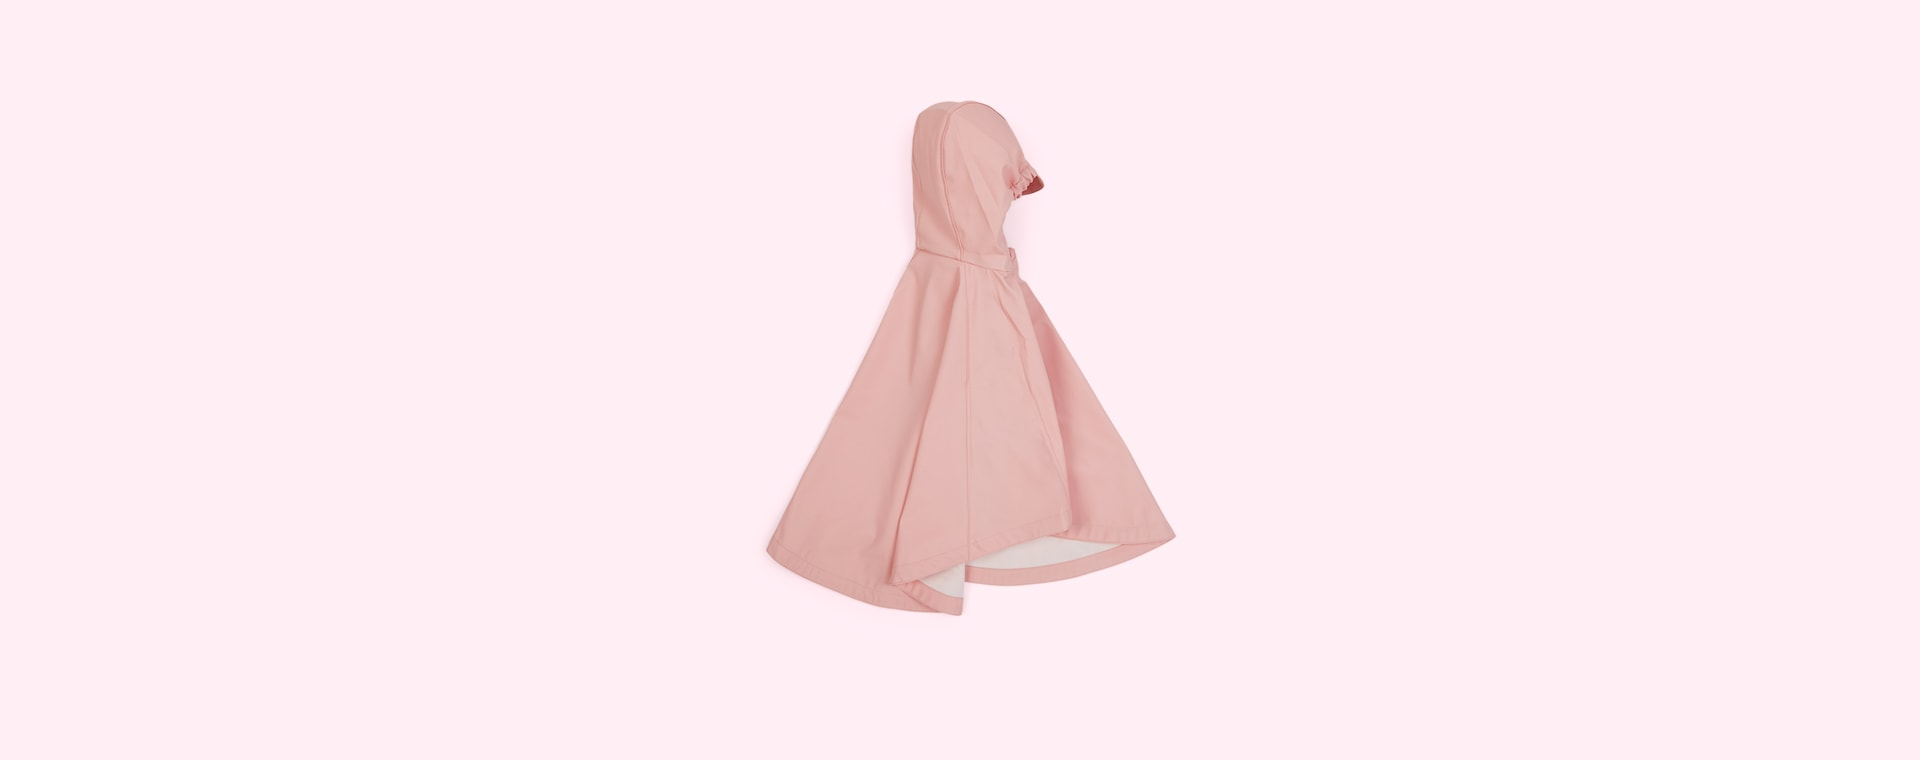 Powder Pink GOSOAKY Unisex Cape